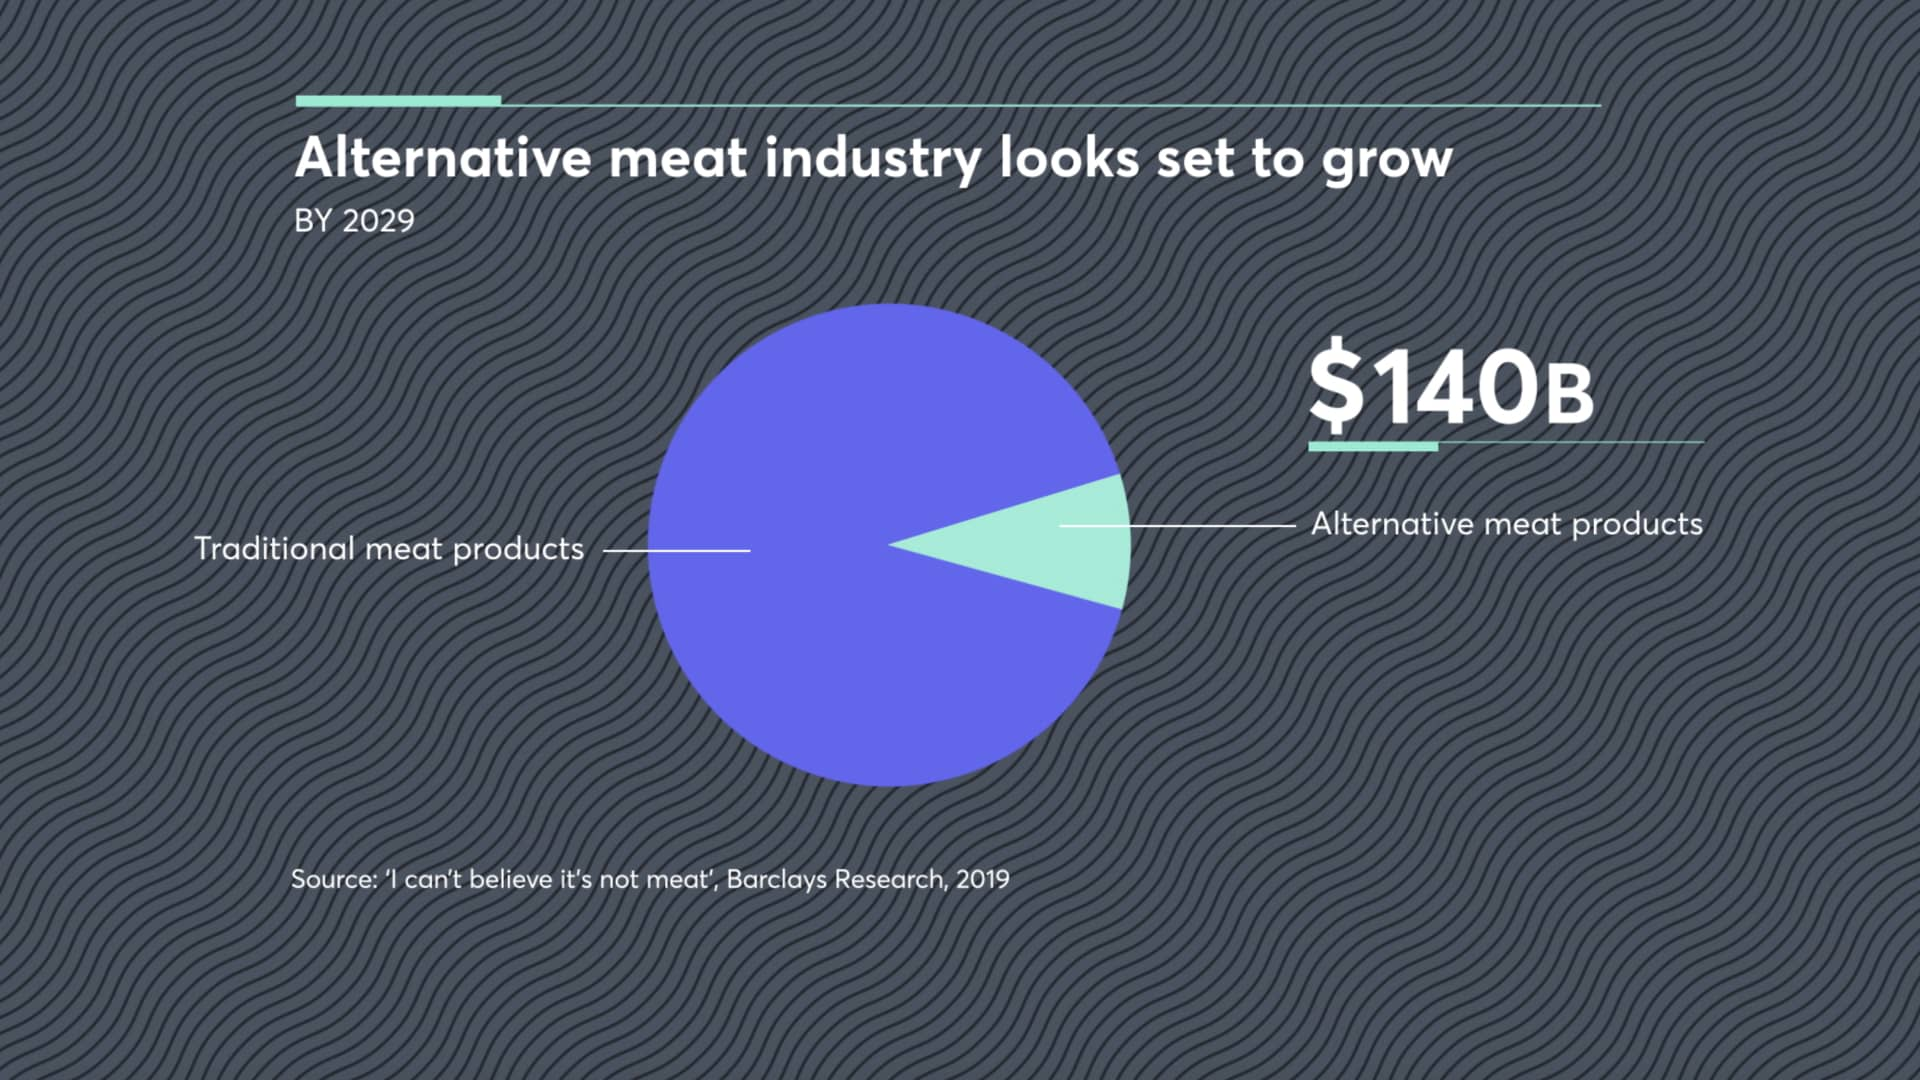 The alternative meat industry is forecast to be worth $140 billion by 2029.